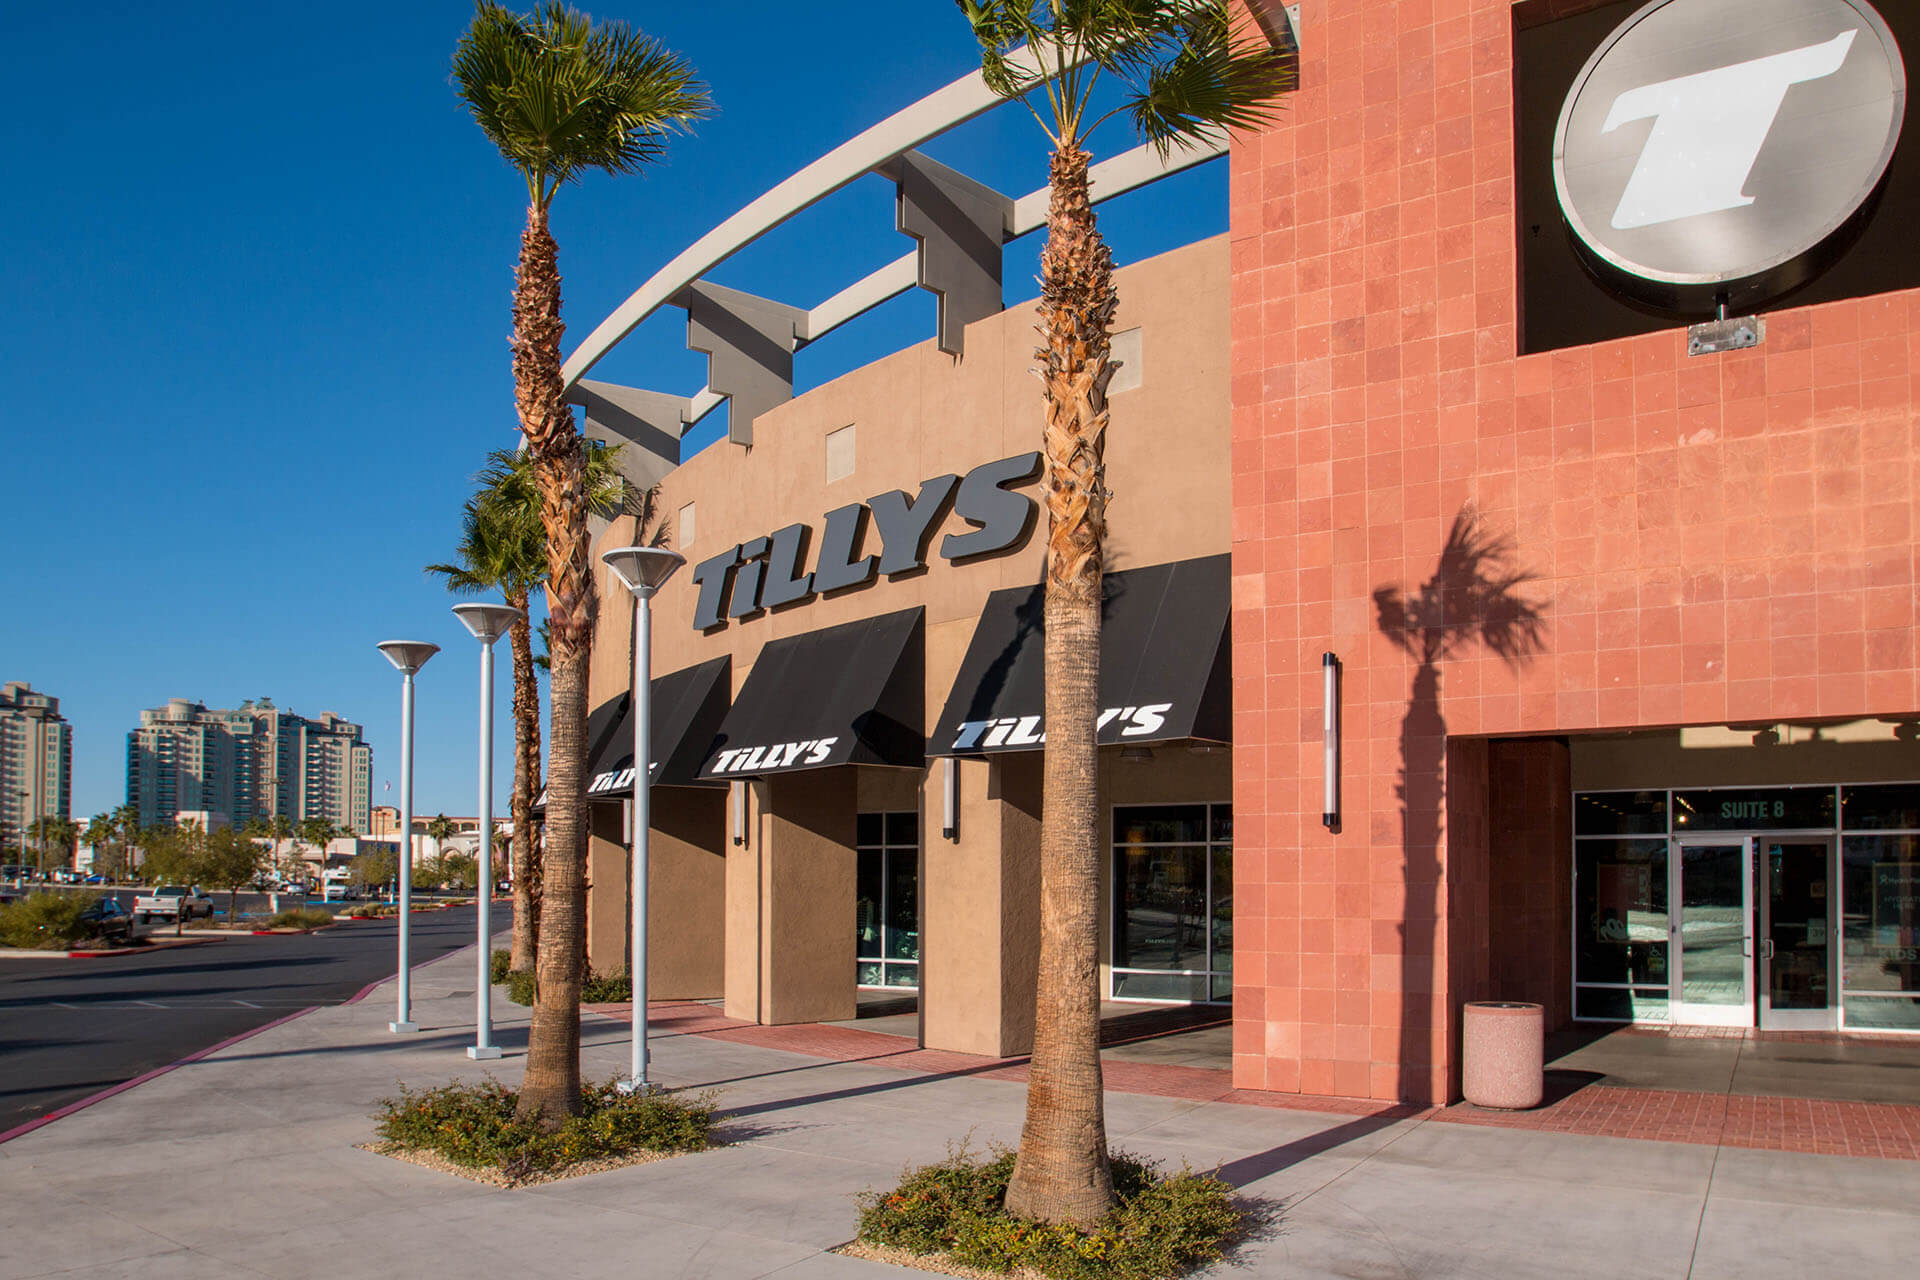 5dbebb4ad2d Tilly s Clothing Store Rampart and Charleston Commercial Awnings - Metro  Awnings of Las Vegas